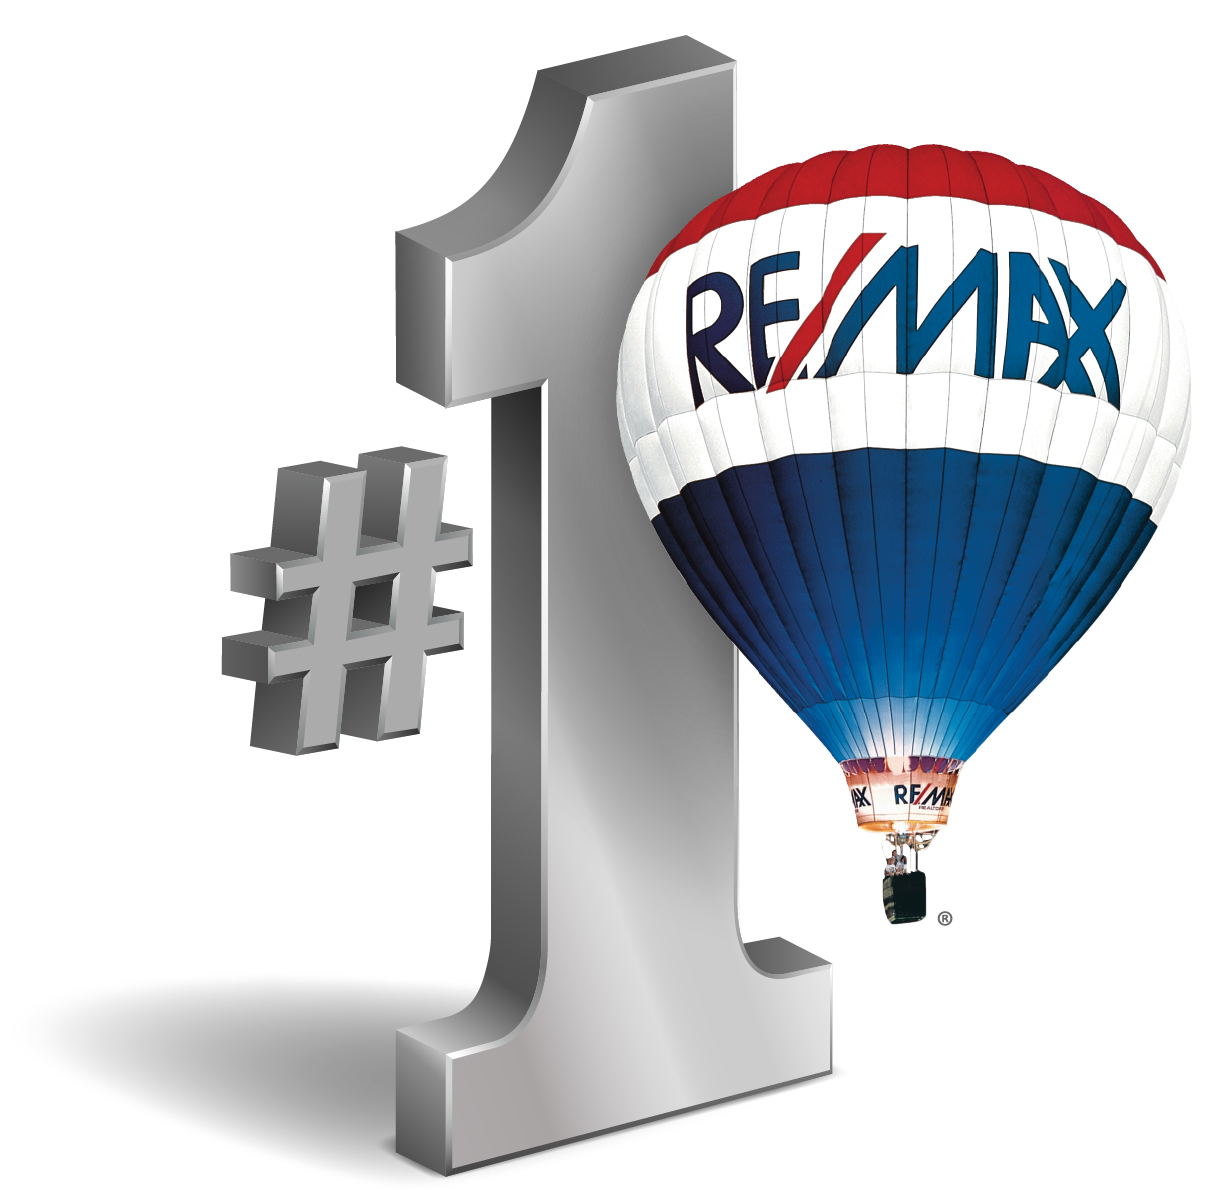 073860_REMAX_Number_One_3D_Chrome_RGB